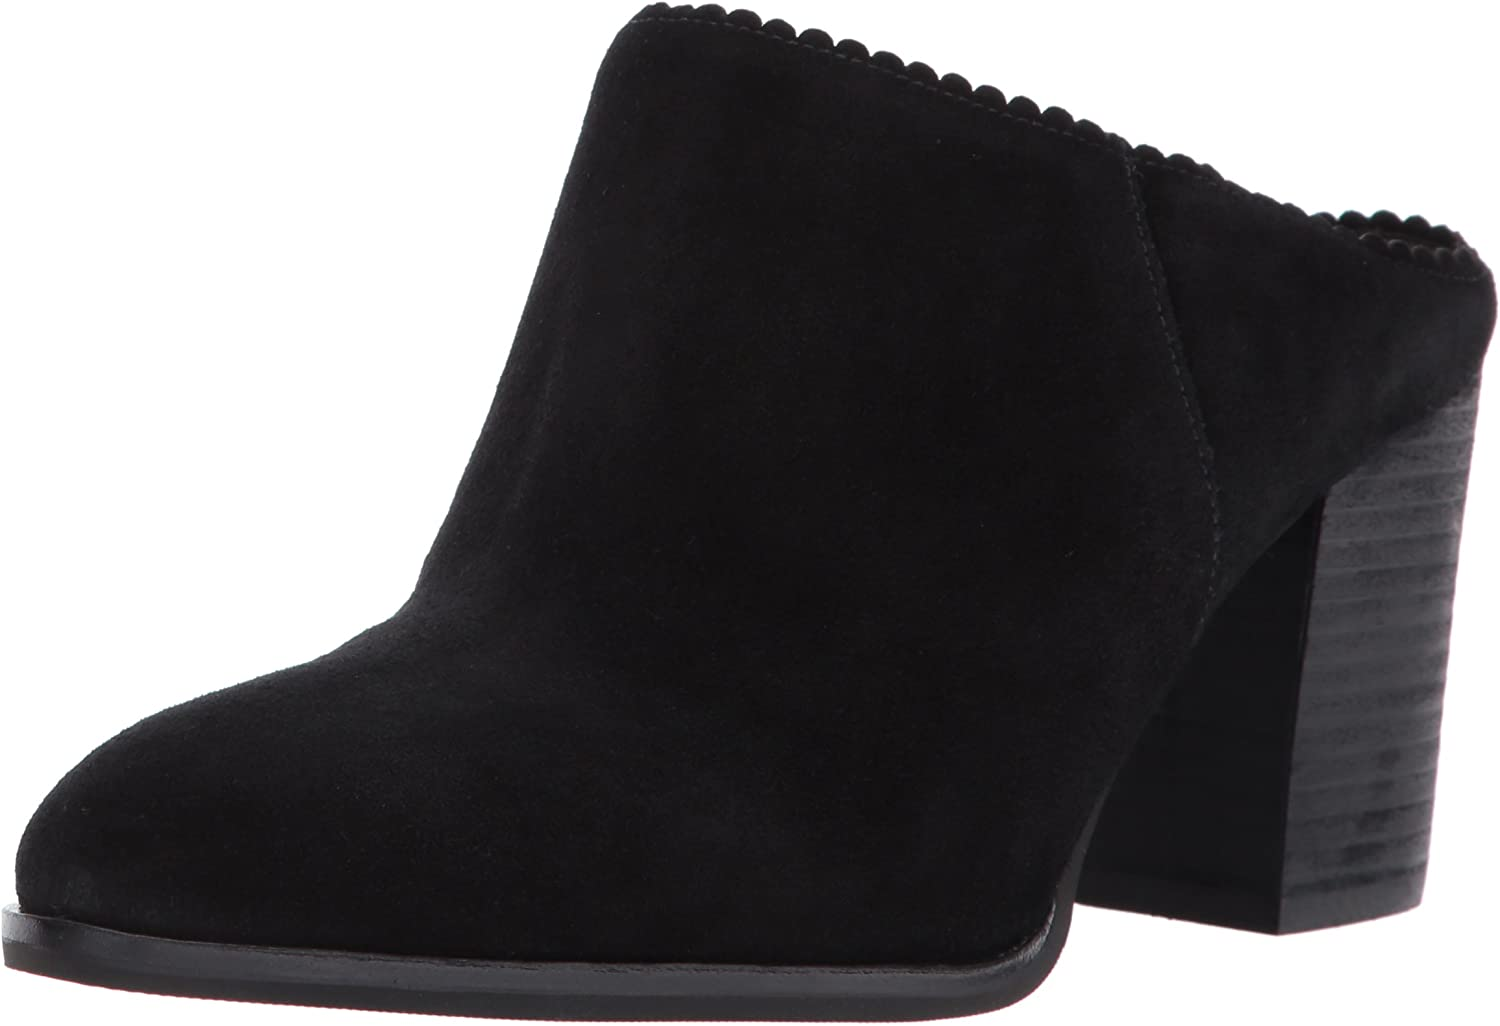 Via Spiga Womens Sophia Backless Bootie Ankle Boot